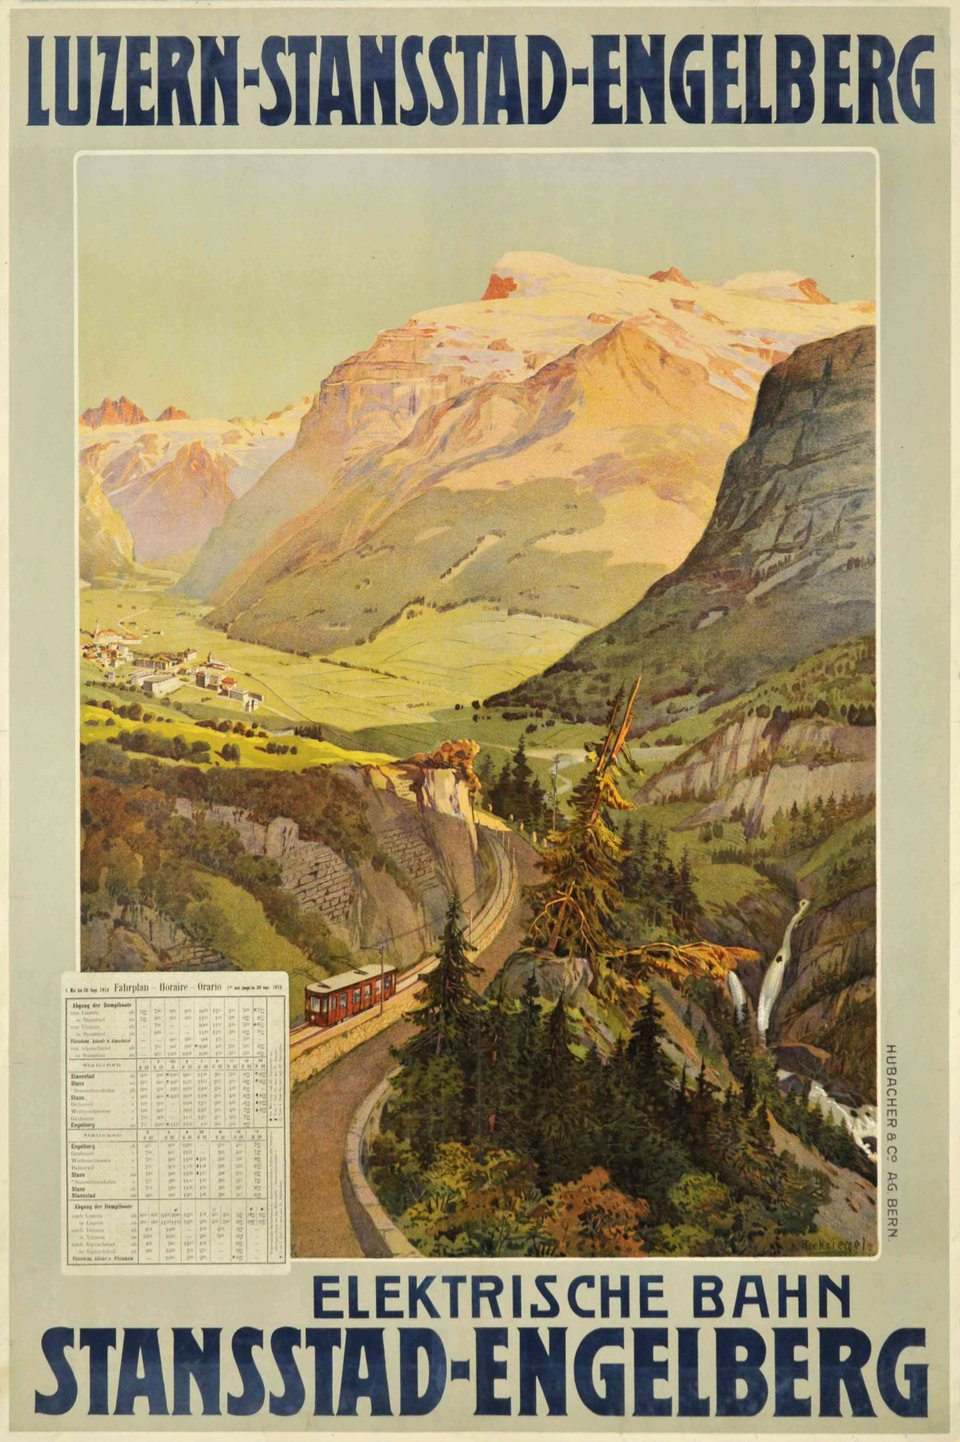 Luzern - Stansstad - Engelberg, Elektrische Bahn, time table 1910. – Affiche ancienne – Anton RECKZIEGEL – 1910